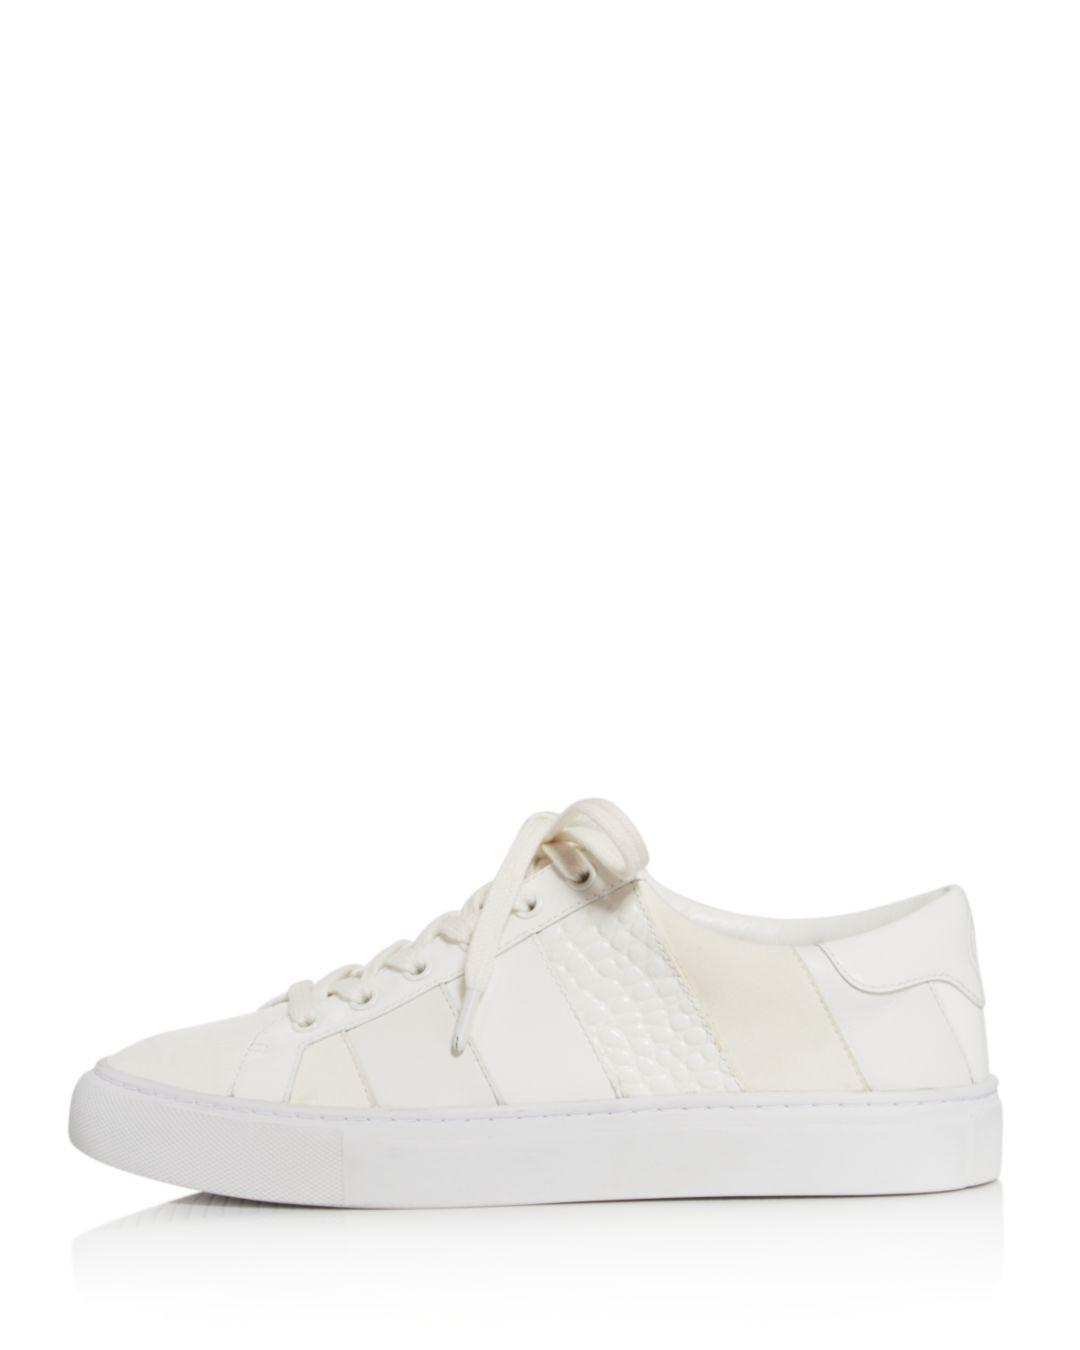 17d80cb5758d Lyst - Tory Burch Women s Ames Leather   Suede Sneakers in White